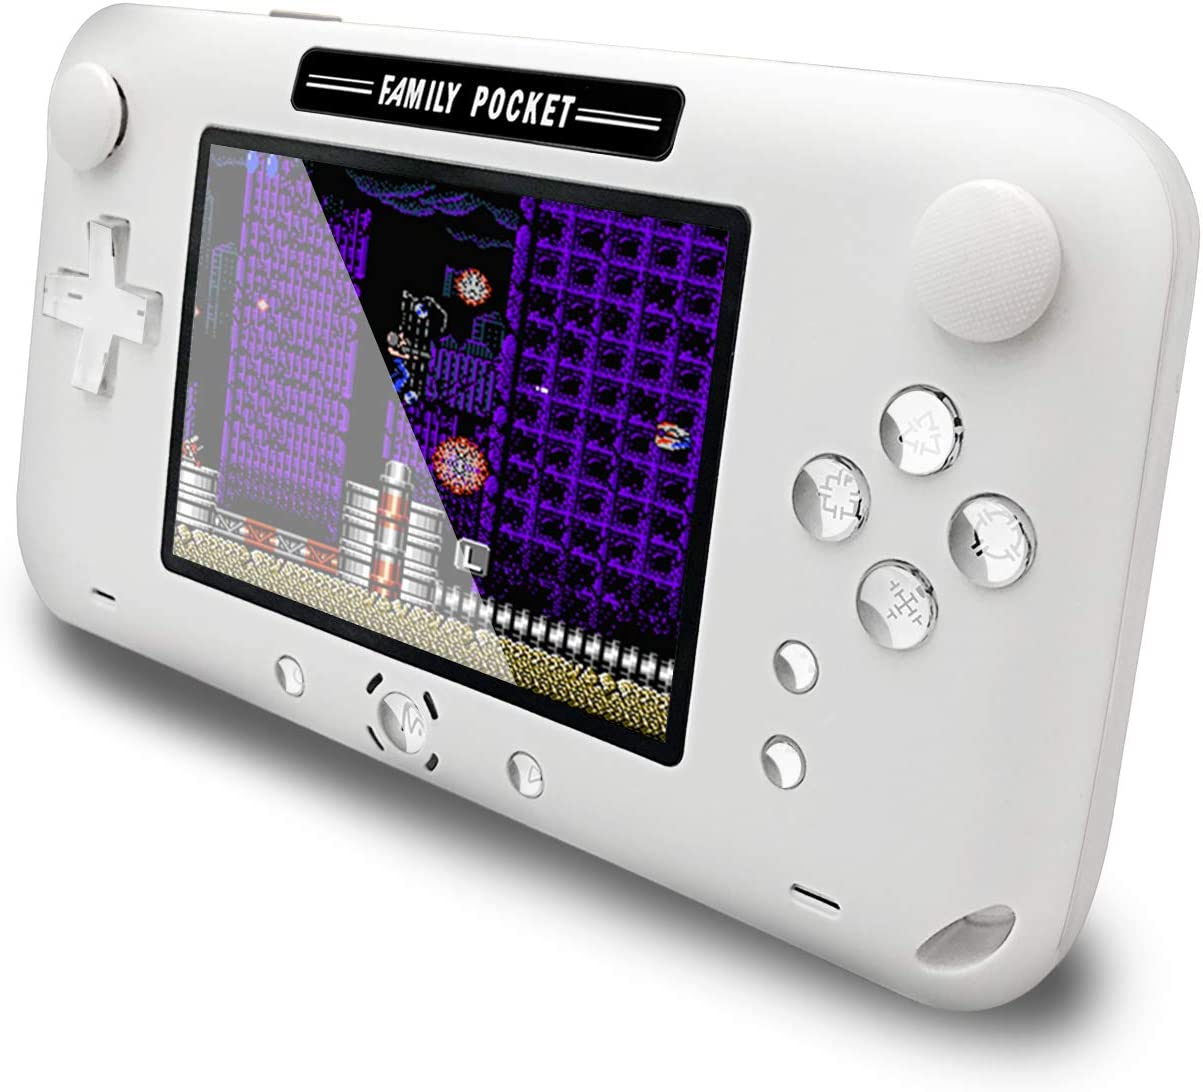 EASEGMER Handheld Games Max 67% OFF for Kids Built-in Retro 500 Video FC Ga Sales results No. 1